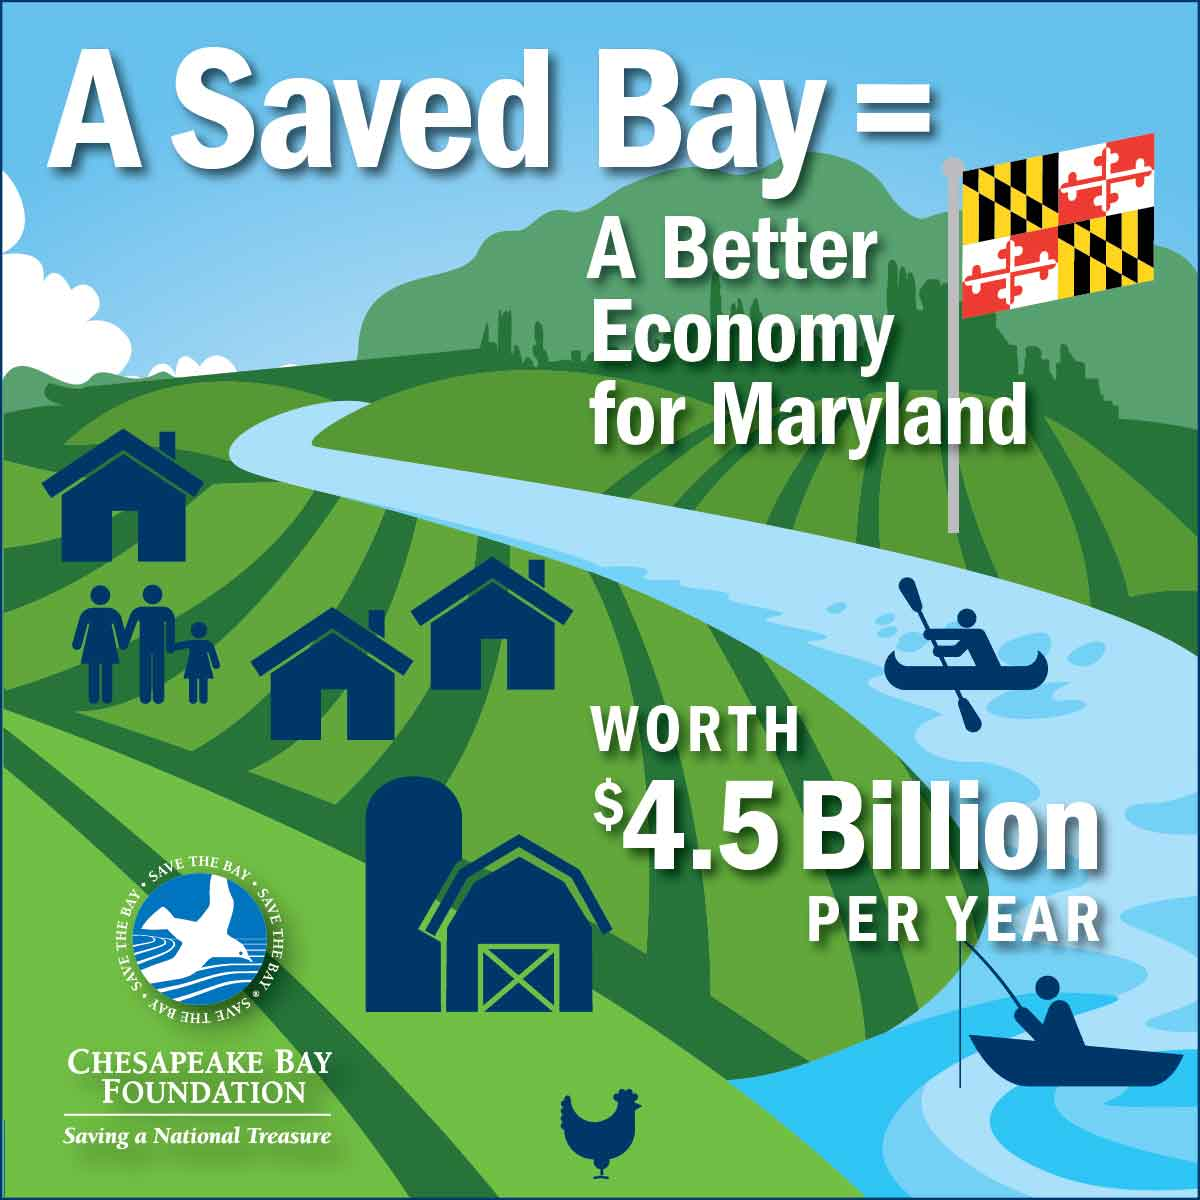 A Saved Bay = A Better Economy for Maryland worth $4.5 Billion per year